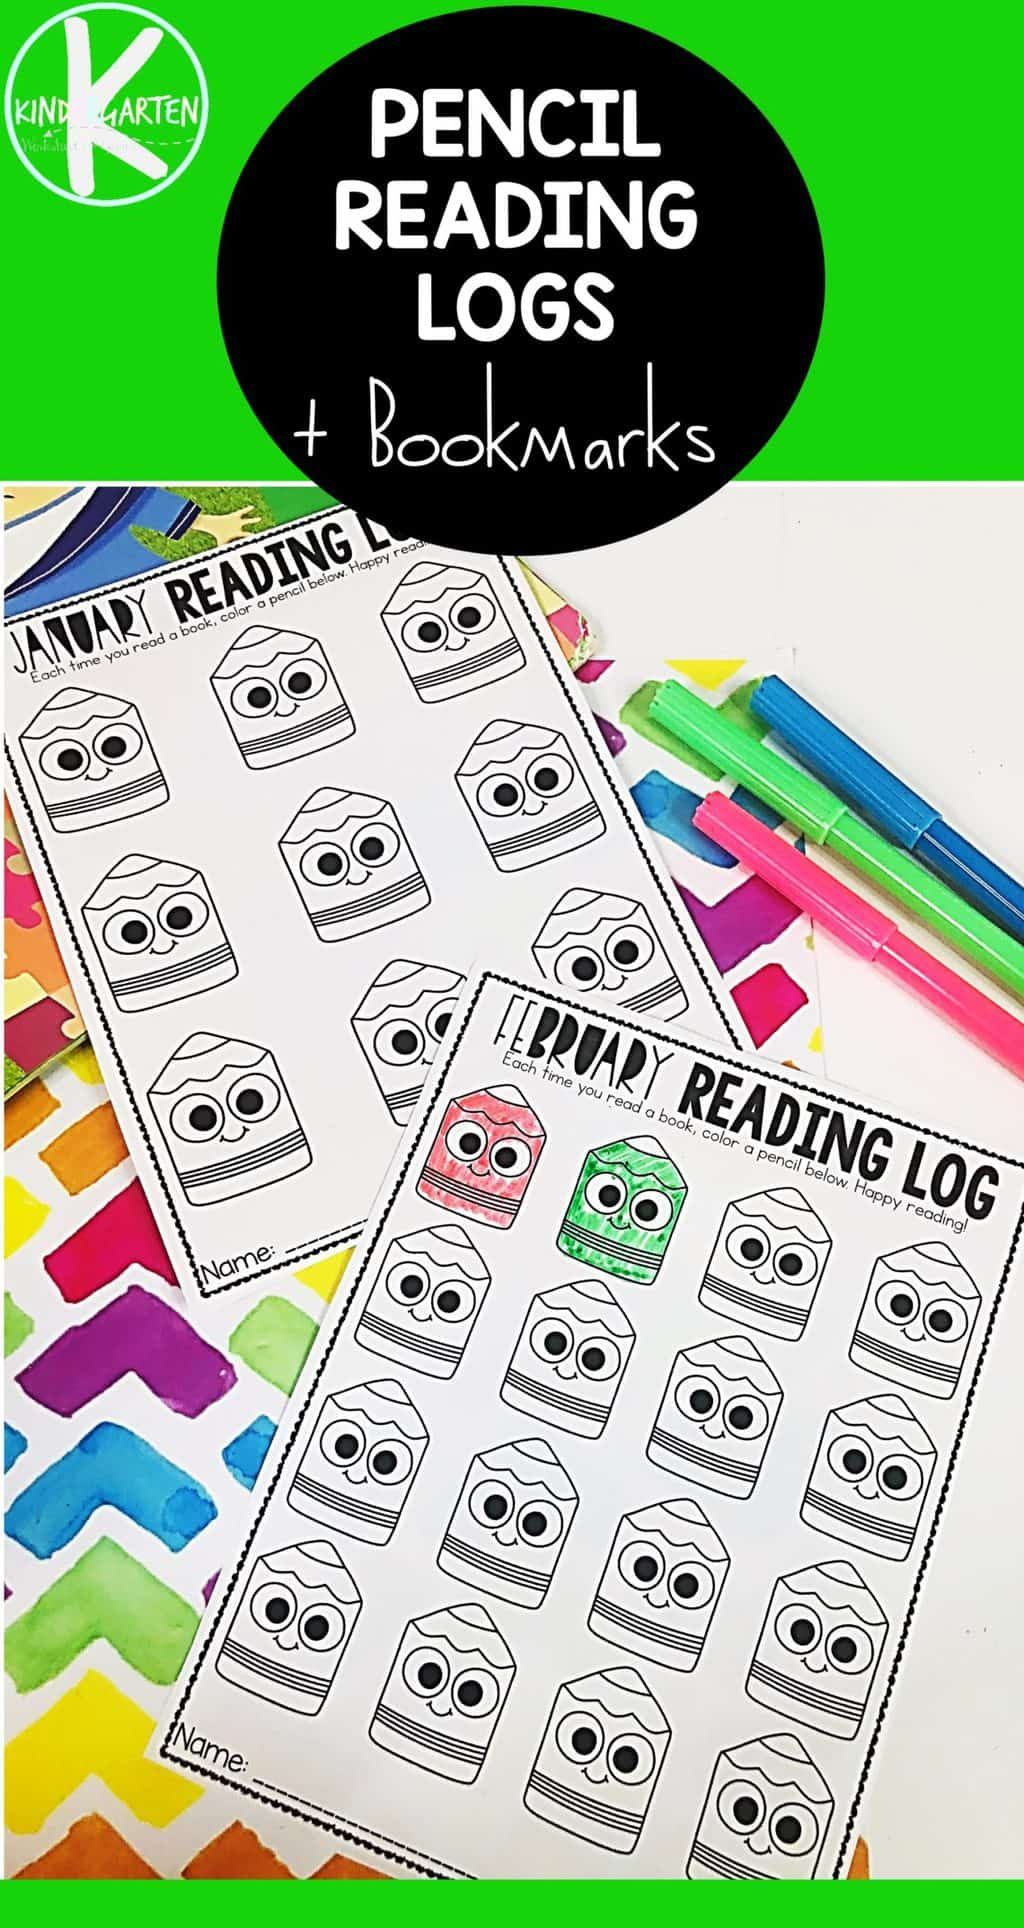 Free Pencil Reading Log Printable